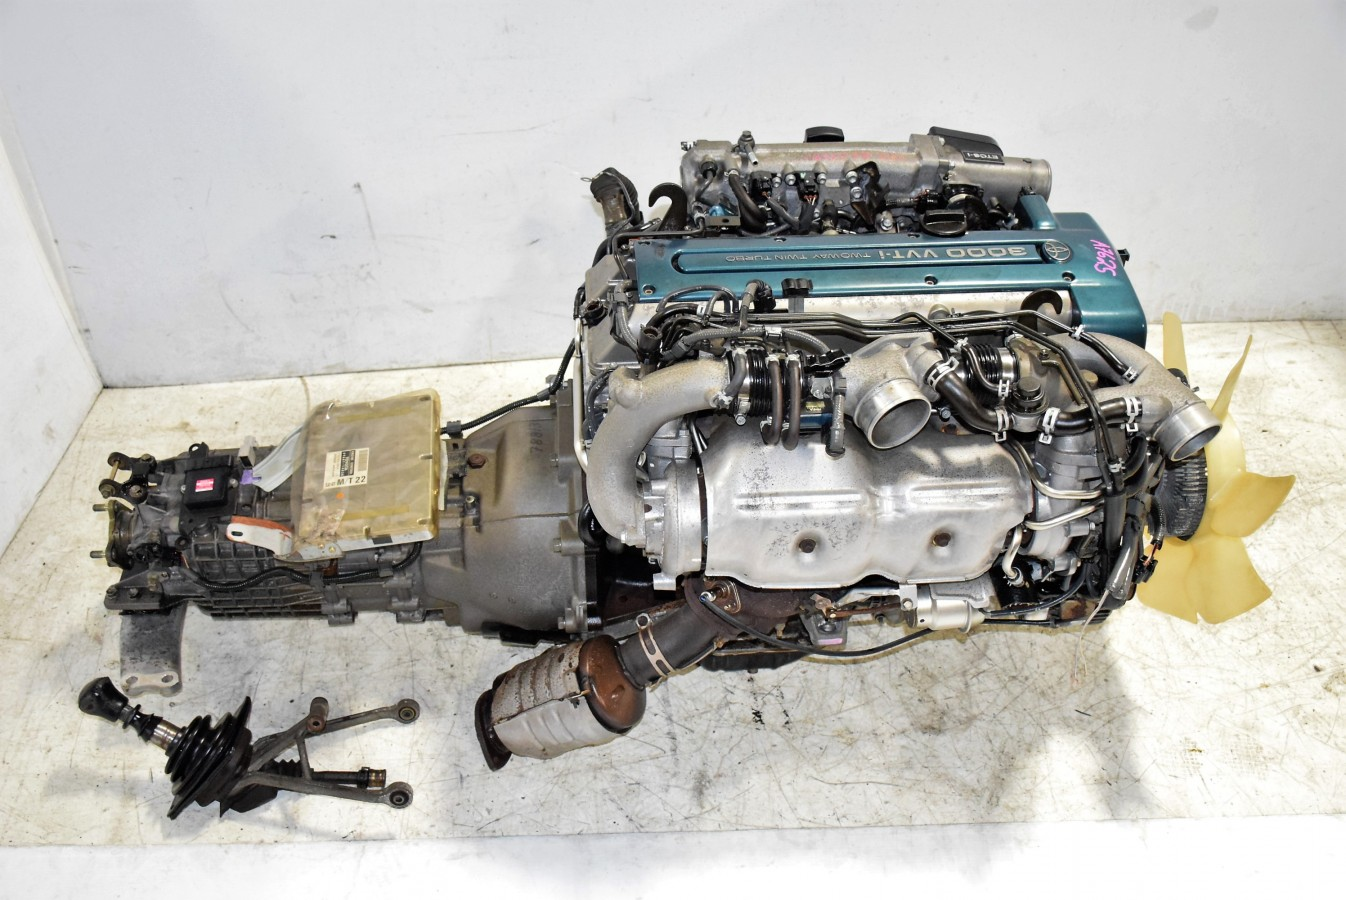 2jz Gte Vvt I Twin Turbo Toyota Supra Engine With V161 6 Speed Wiring Harness Supera Manual Trans